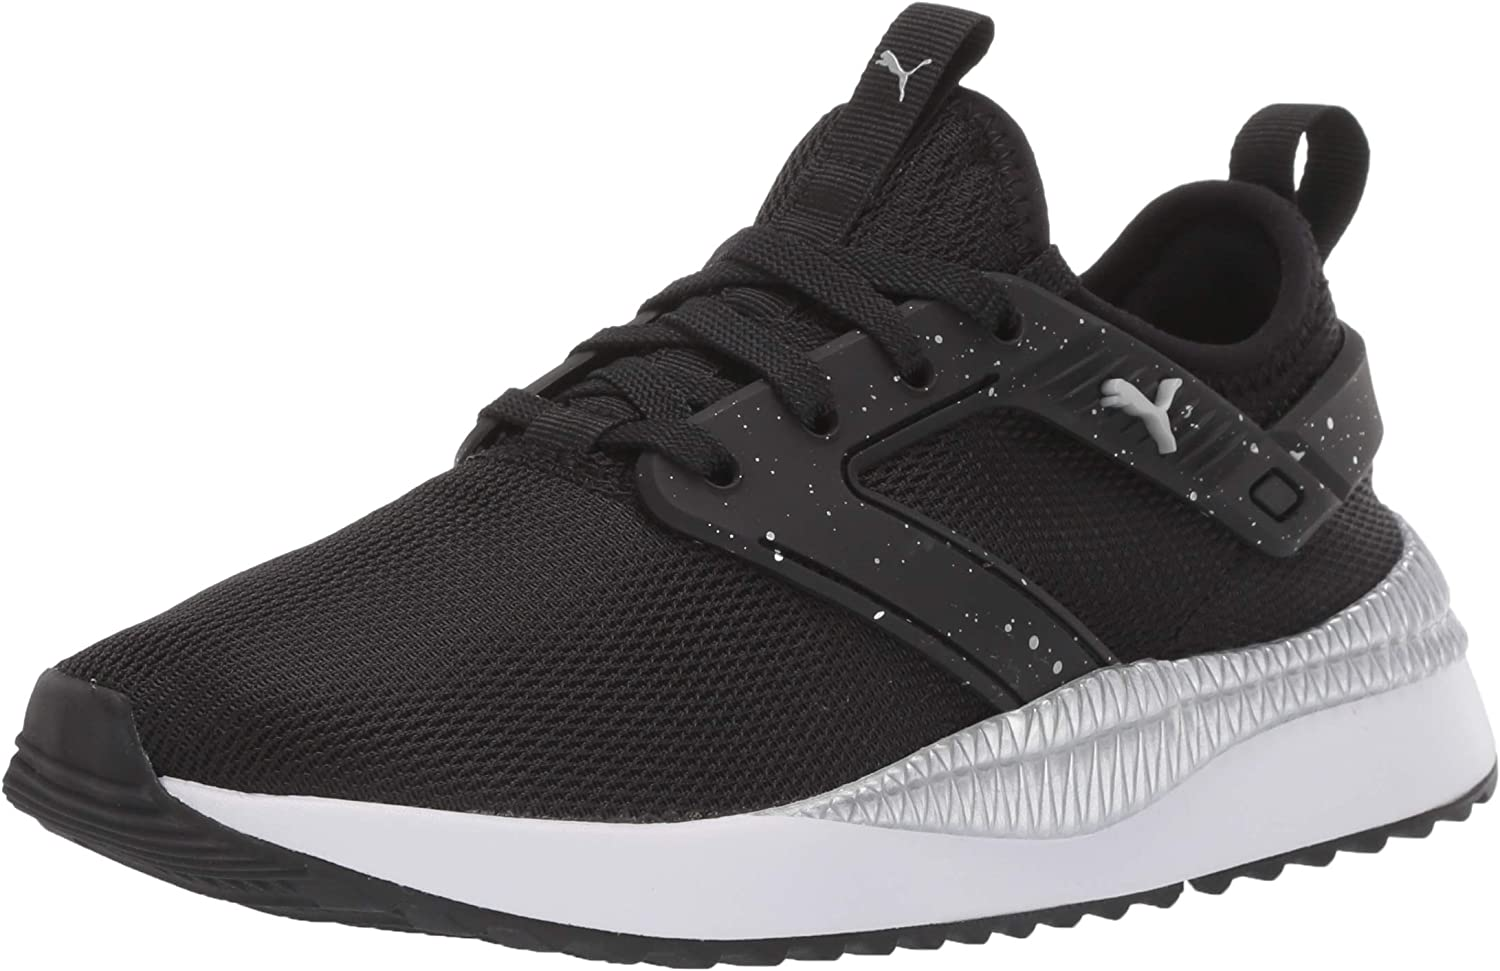 PUMA Women's Max 53% OFF Financial sales sale Pacer Sneaker Next Excel